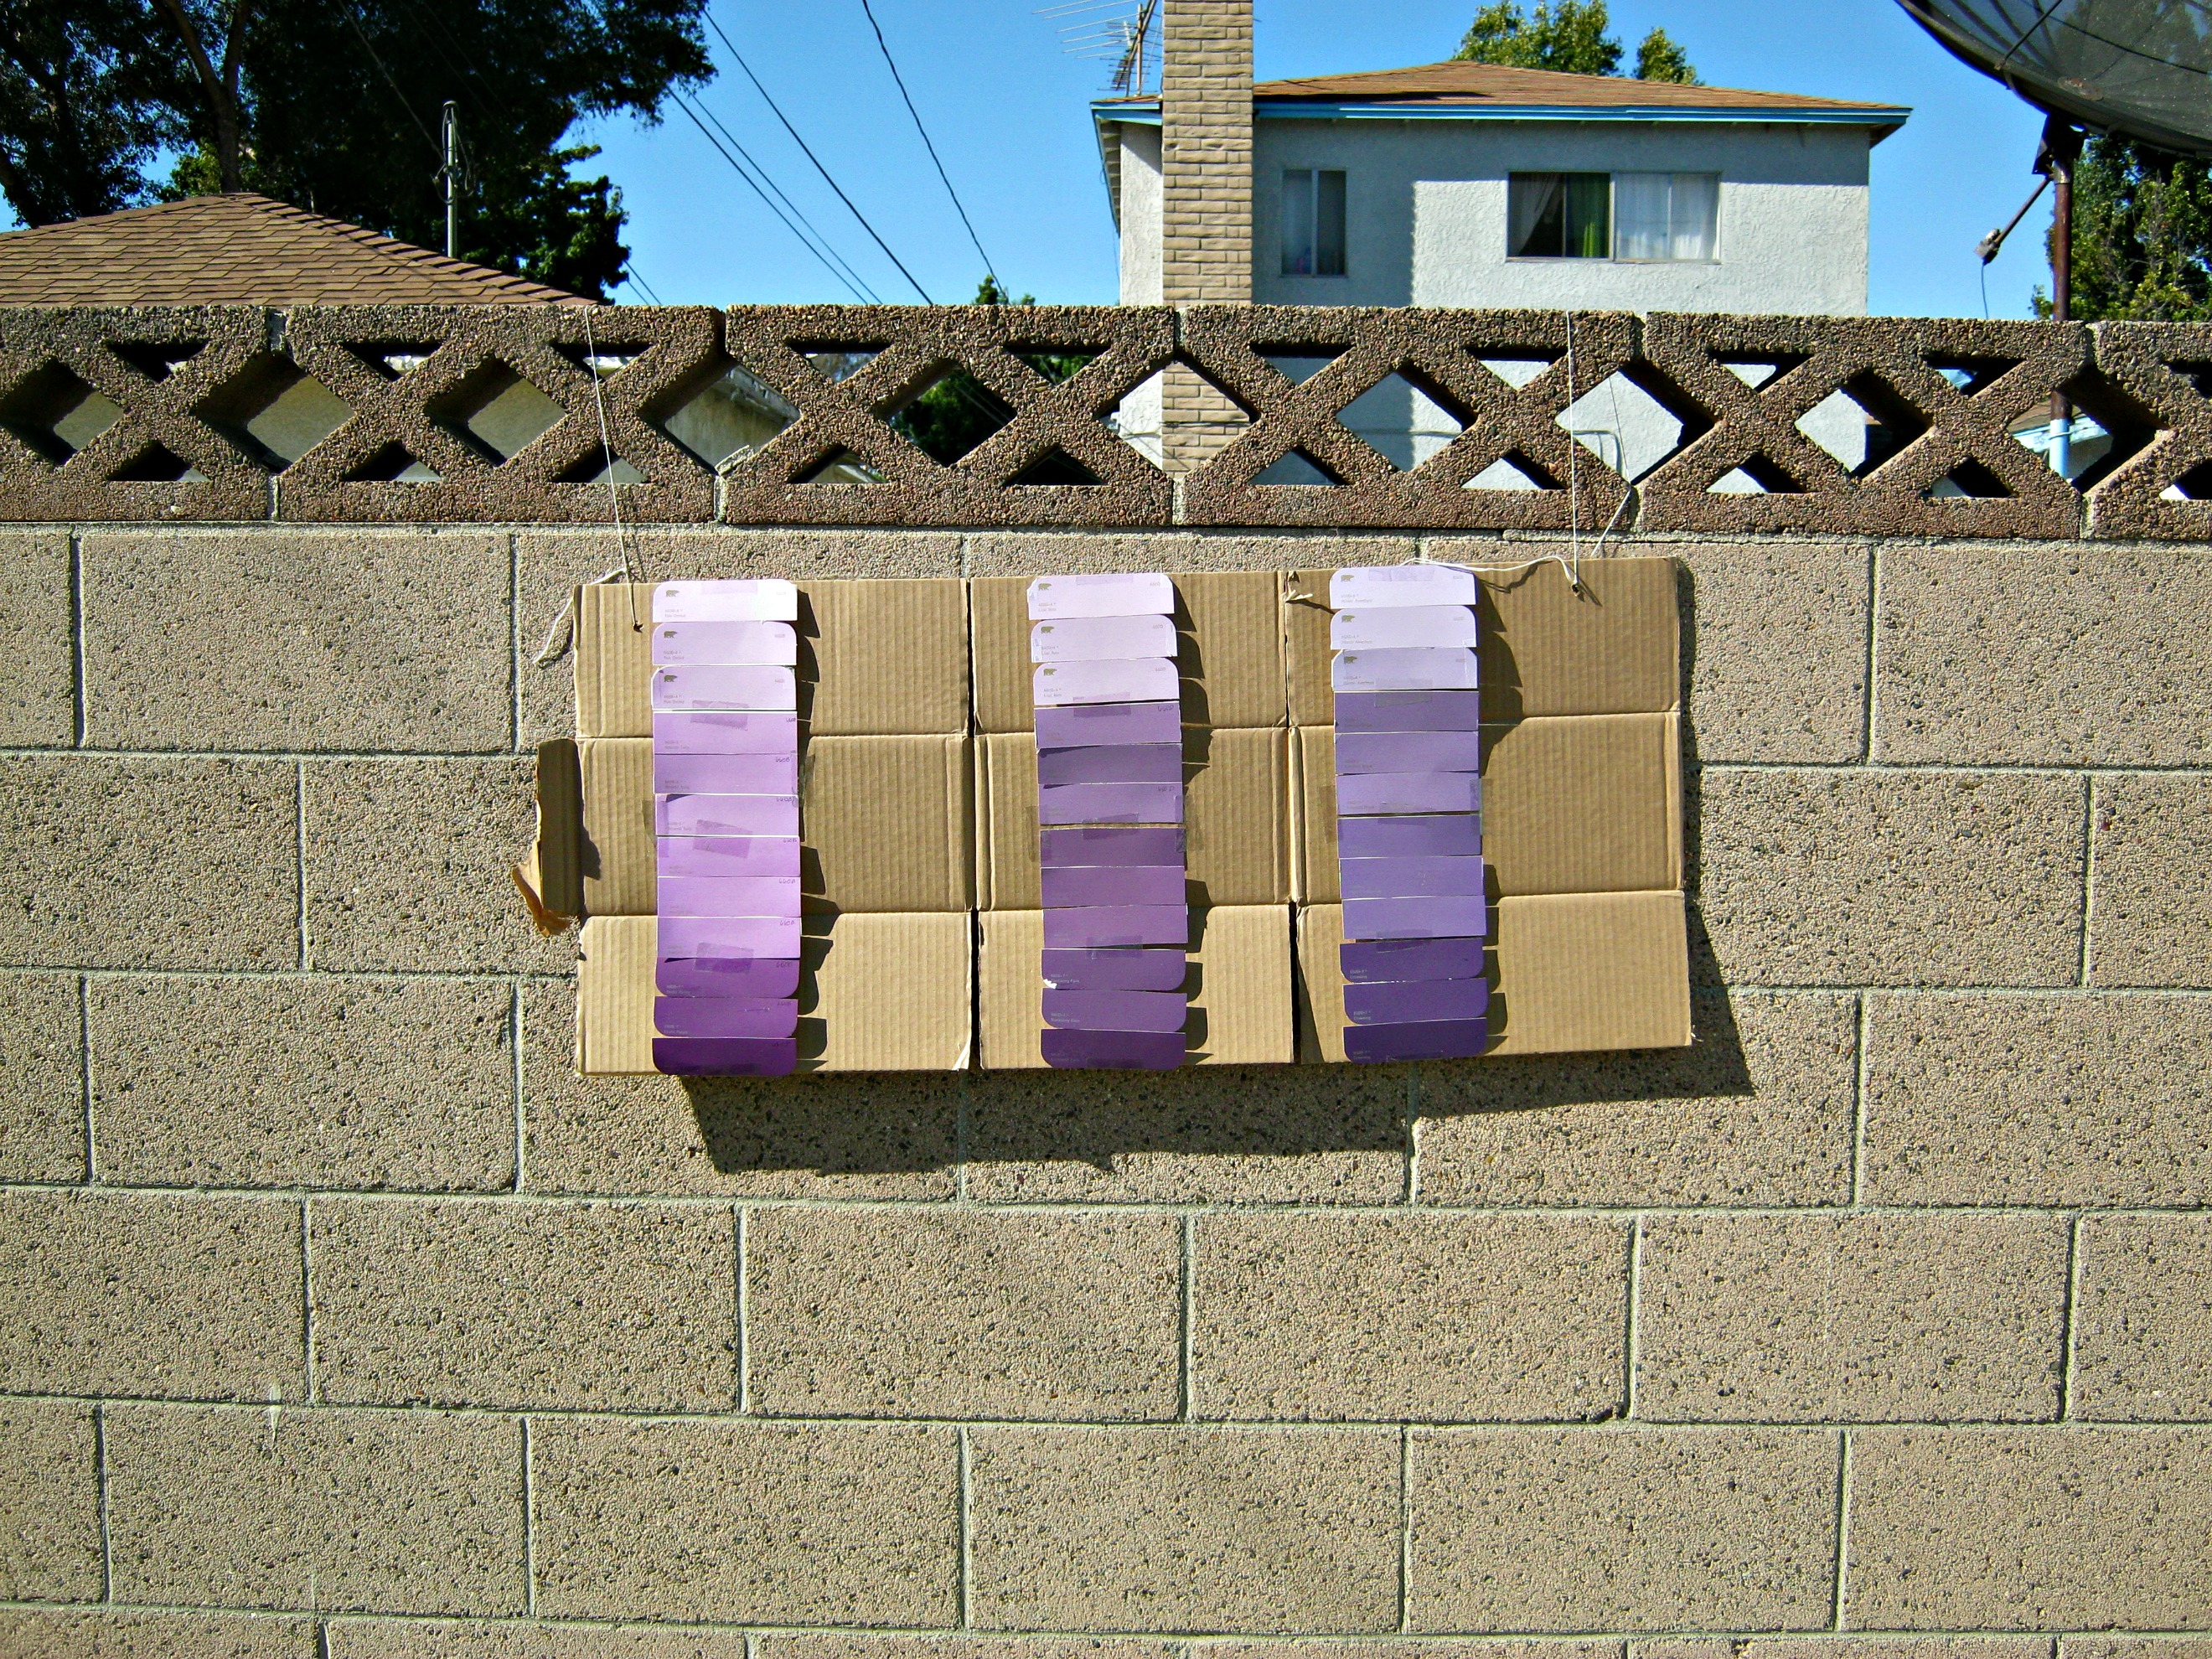 Elegant Paint Swatches On Cinderblock Wall